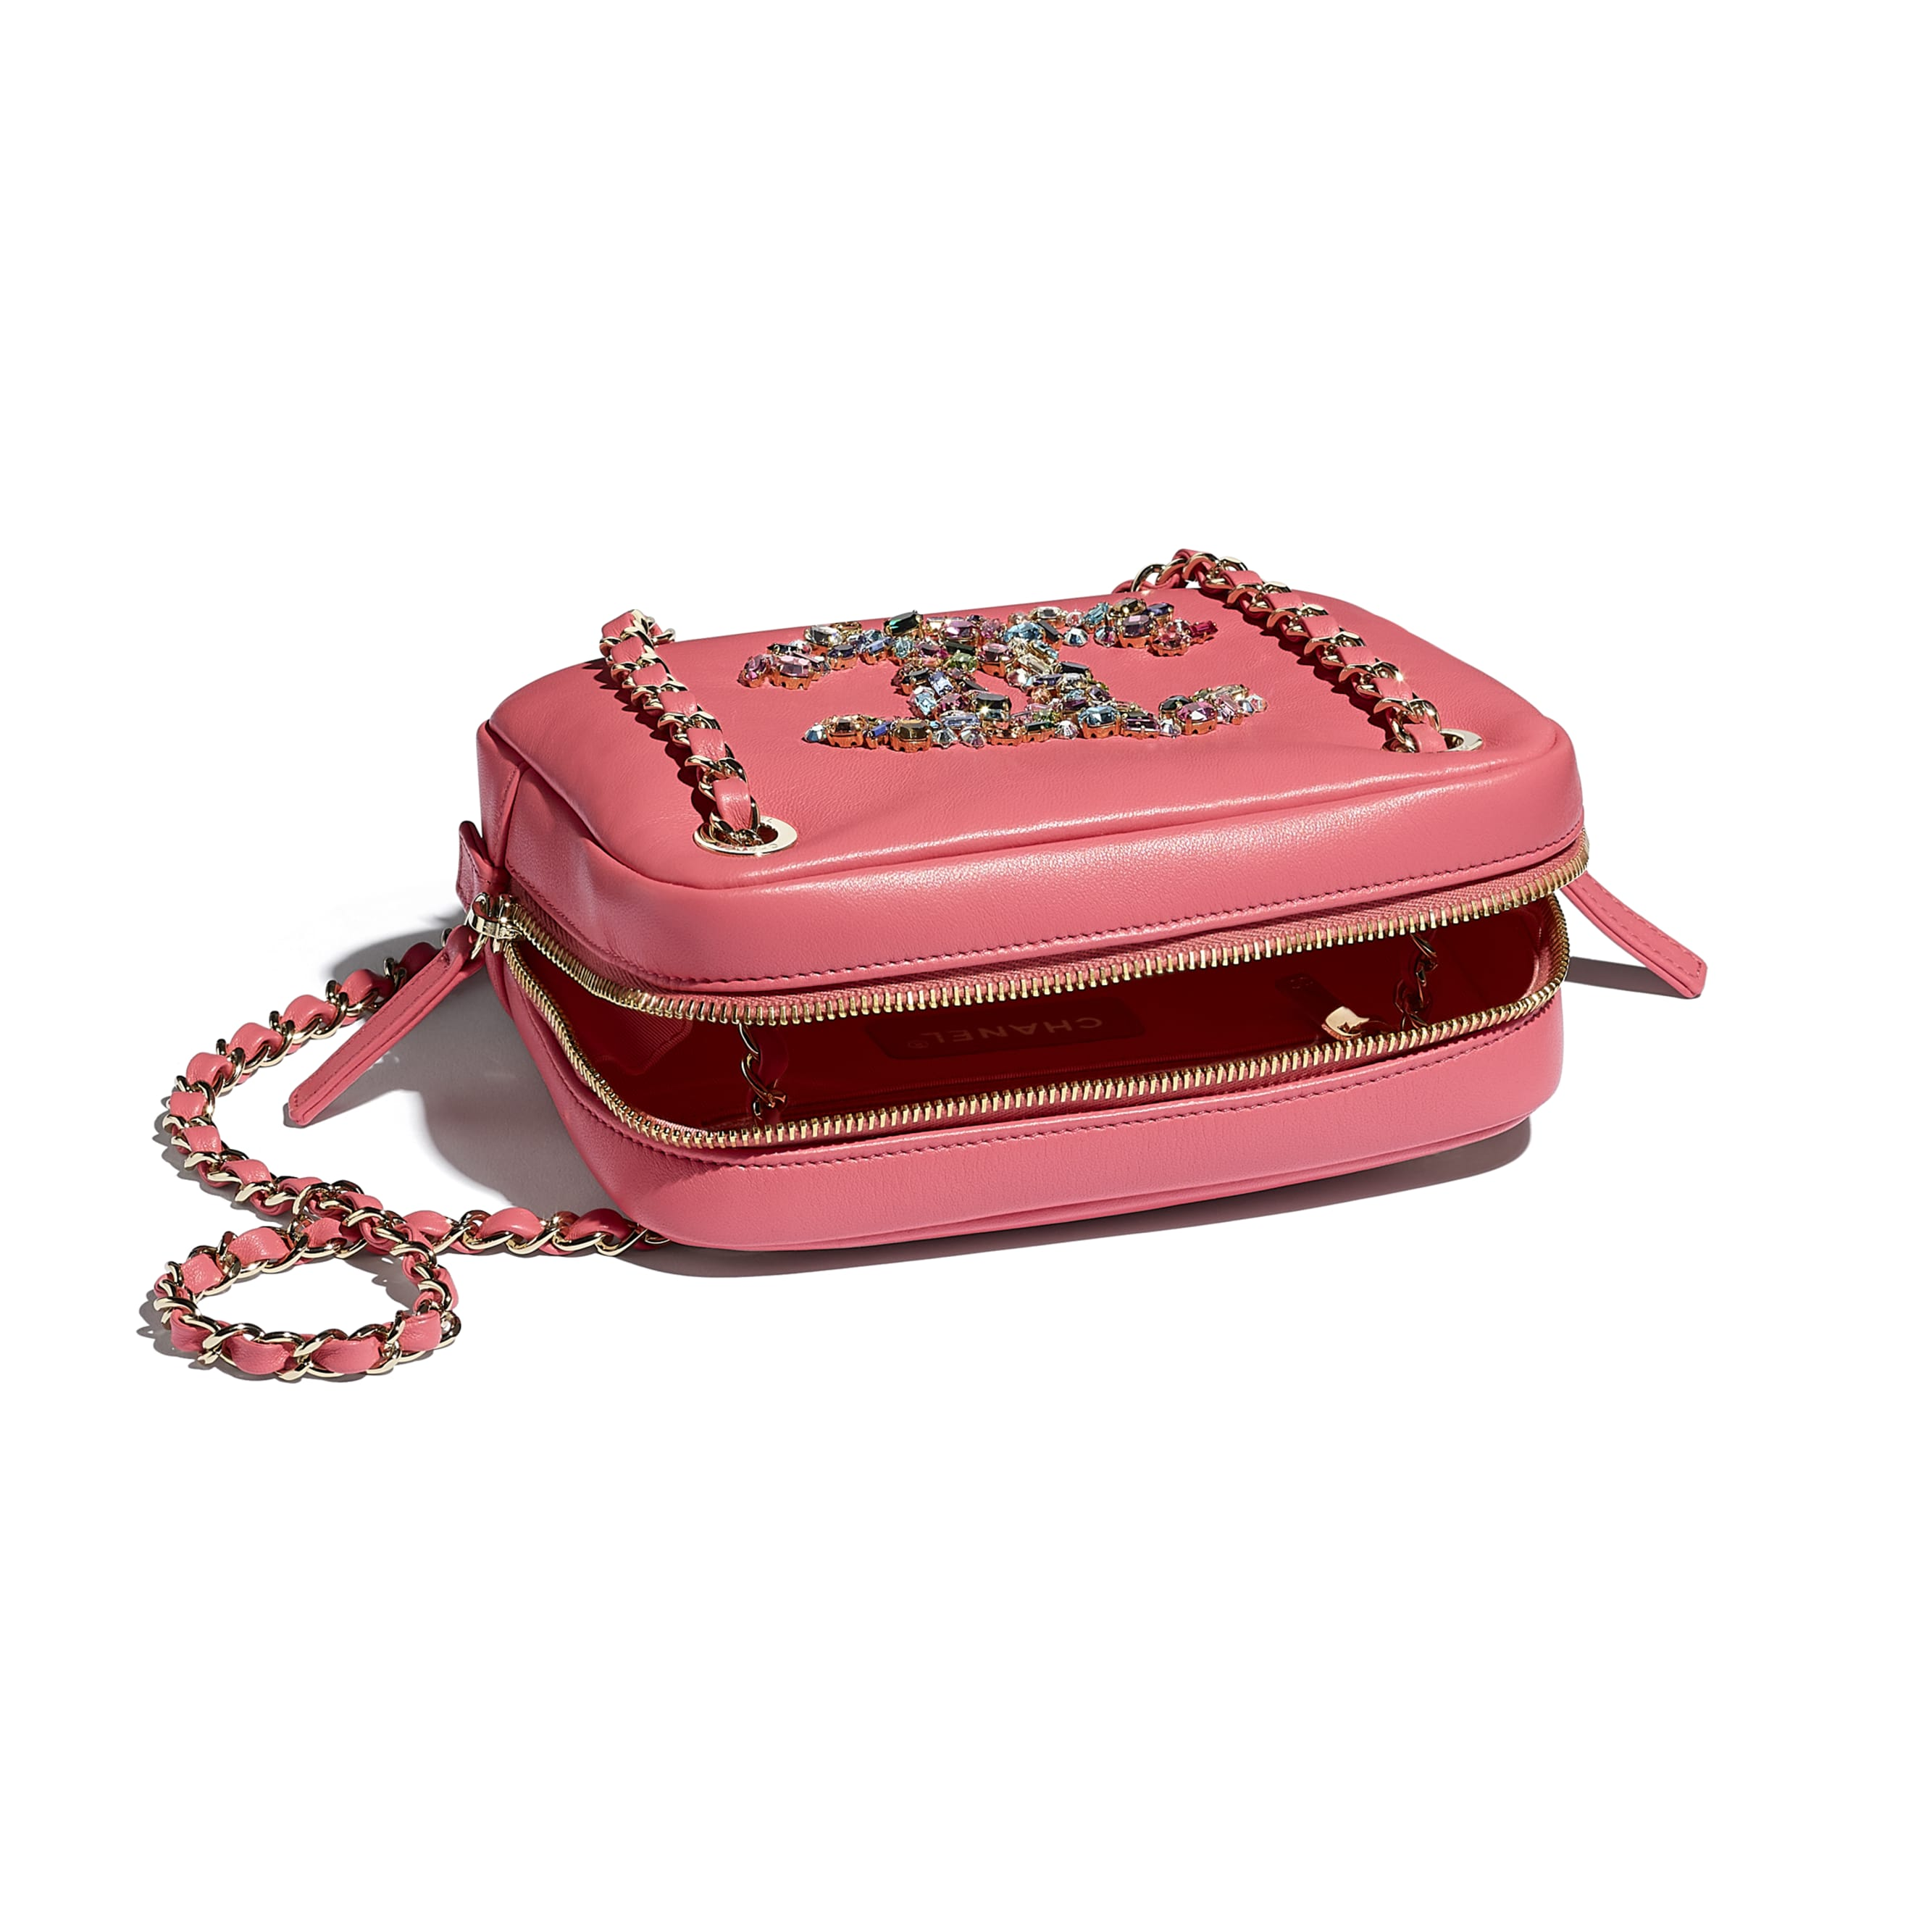 Camera Case - Coral - Lambskin, Crystal, Calfskin & Gold-Tone Metal - CHANEL - Other view - see standard sized version